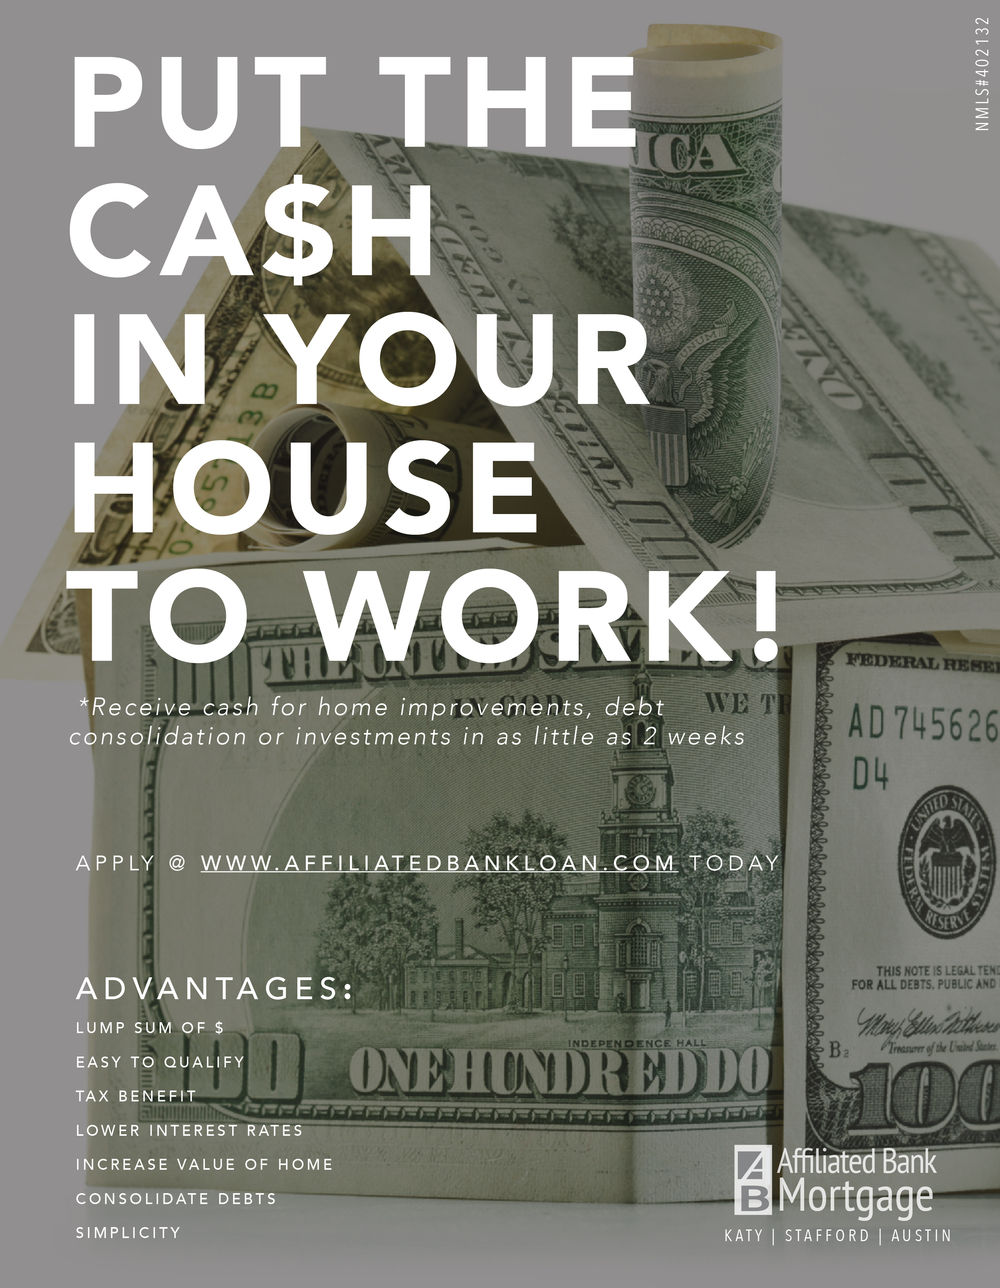 Affiliated Cash Flyer-01.jpg